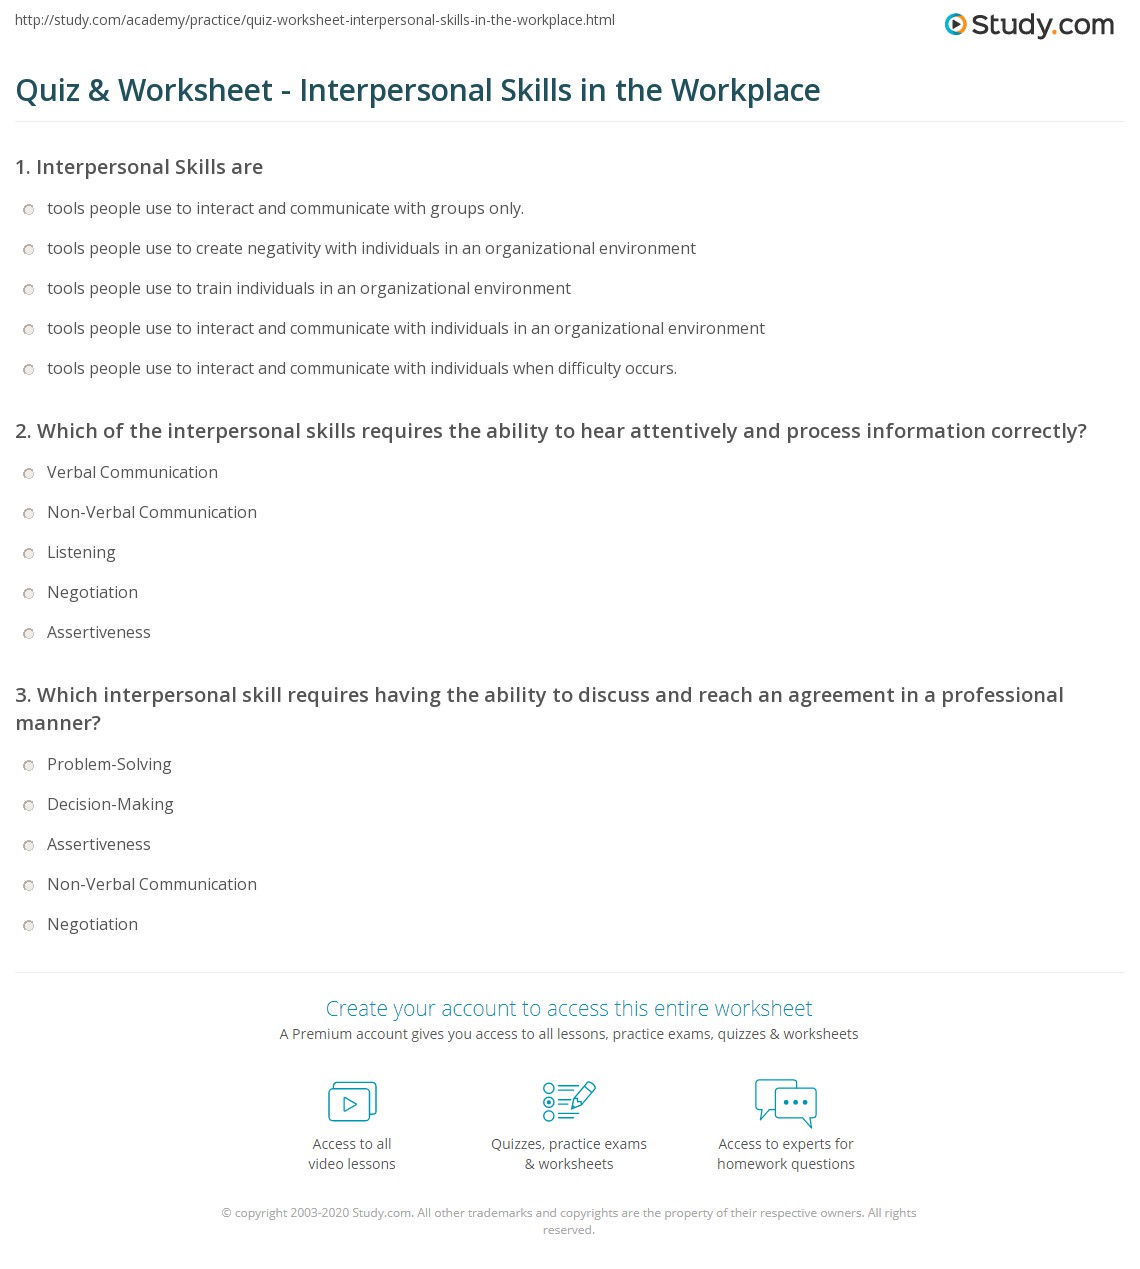 Quiz & Worksheet - Interpersonal Skills in the Workplace | Study.com